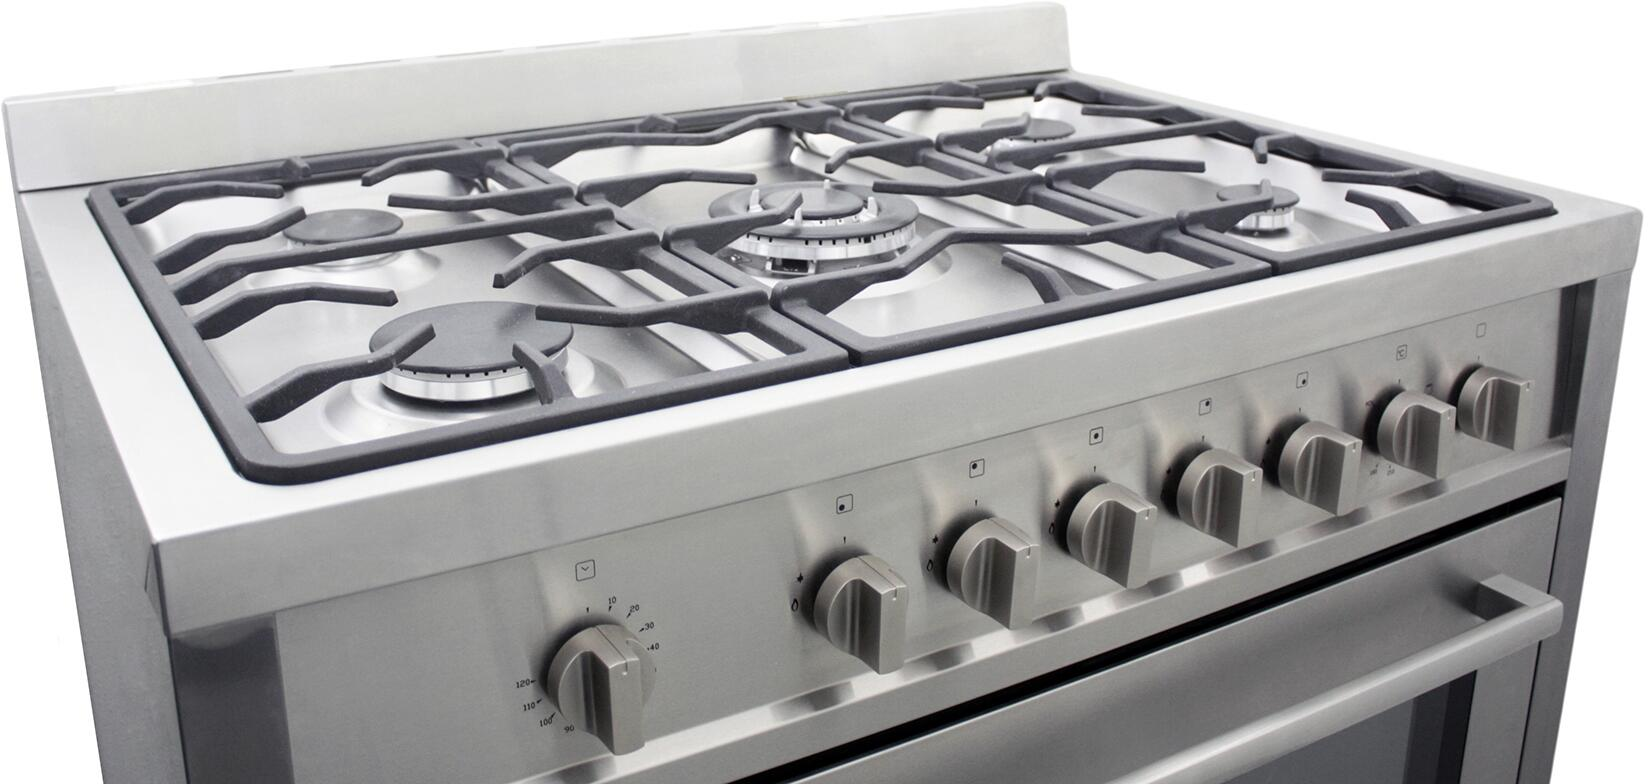 Kitchen gas stove top view - Cosmo Main Image Cosmo Cooktop Cosmo Angled View